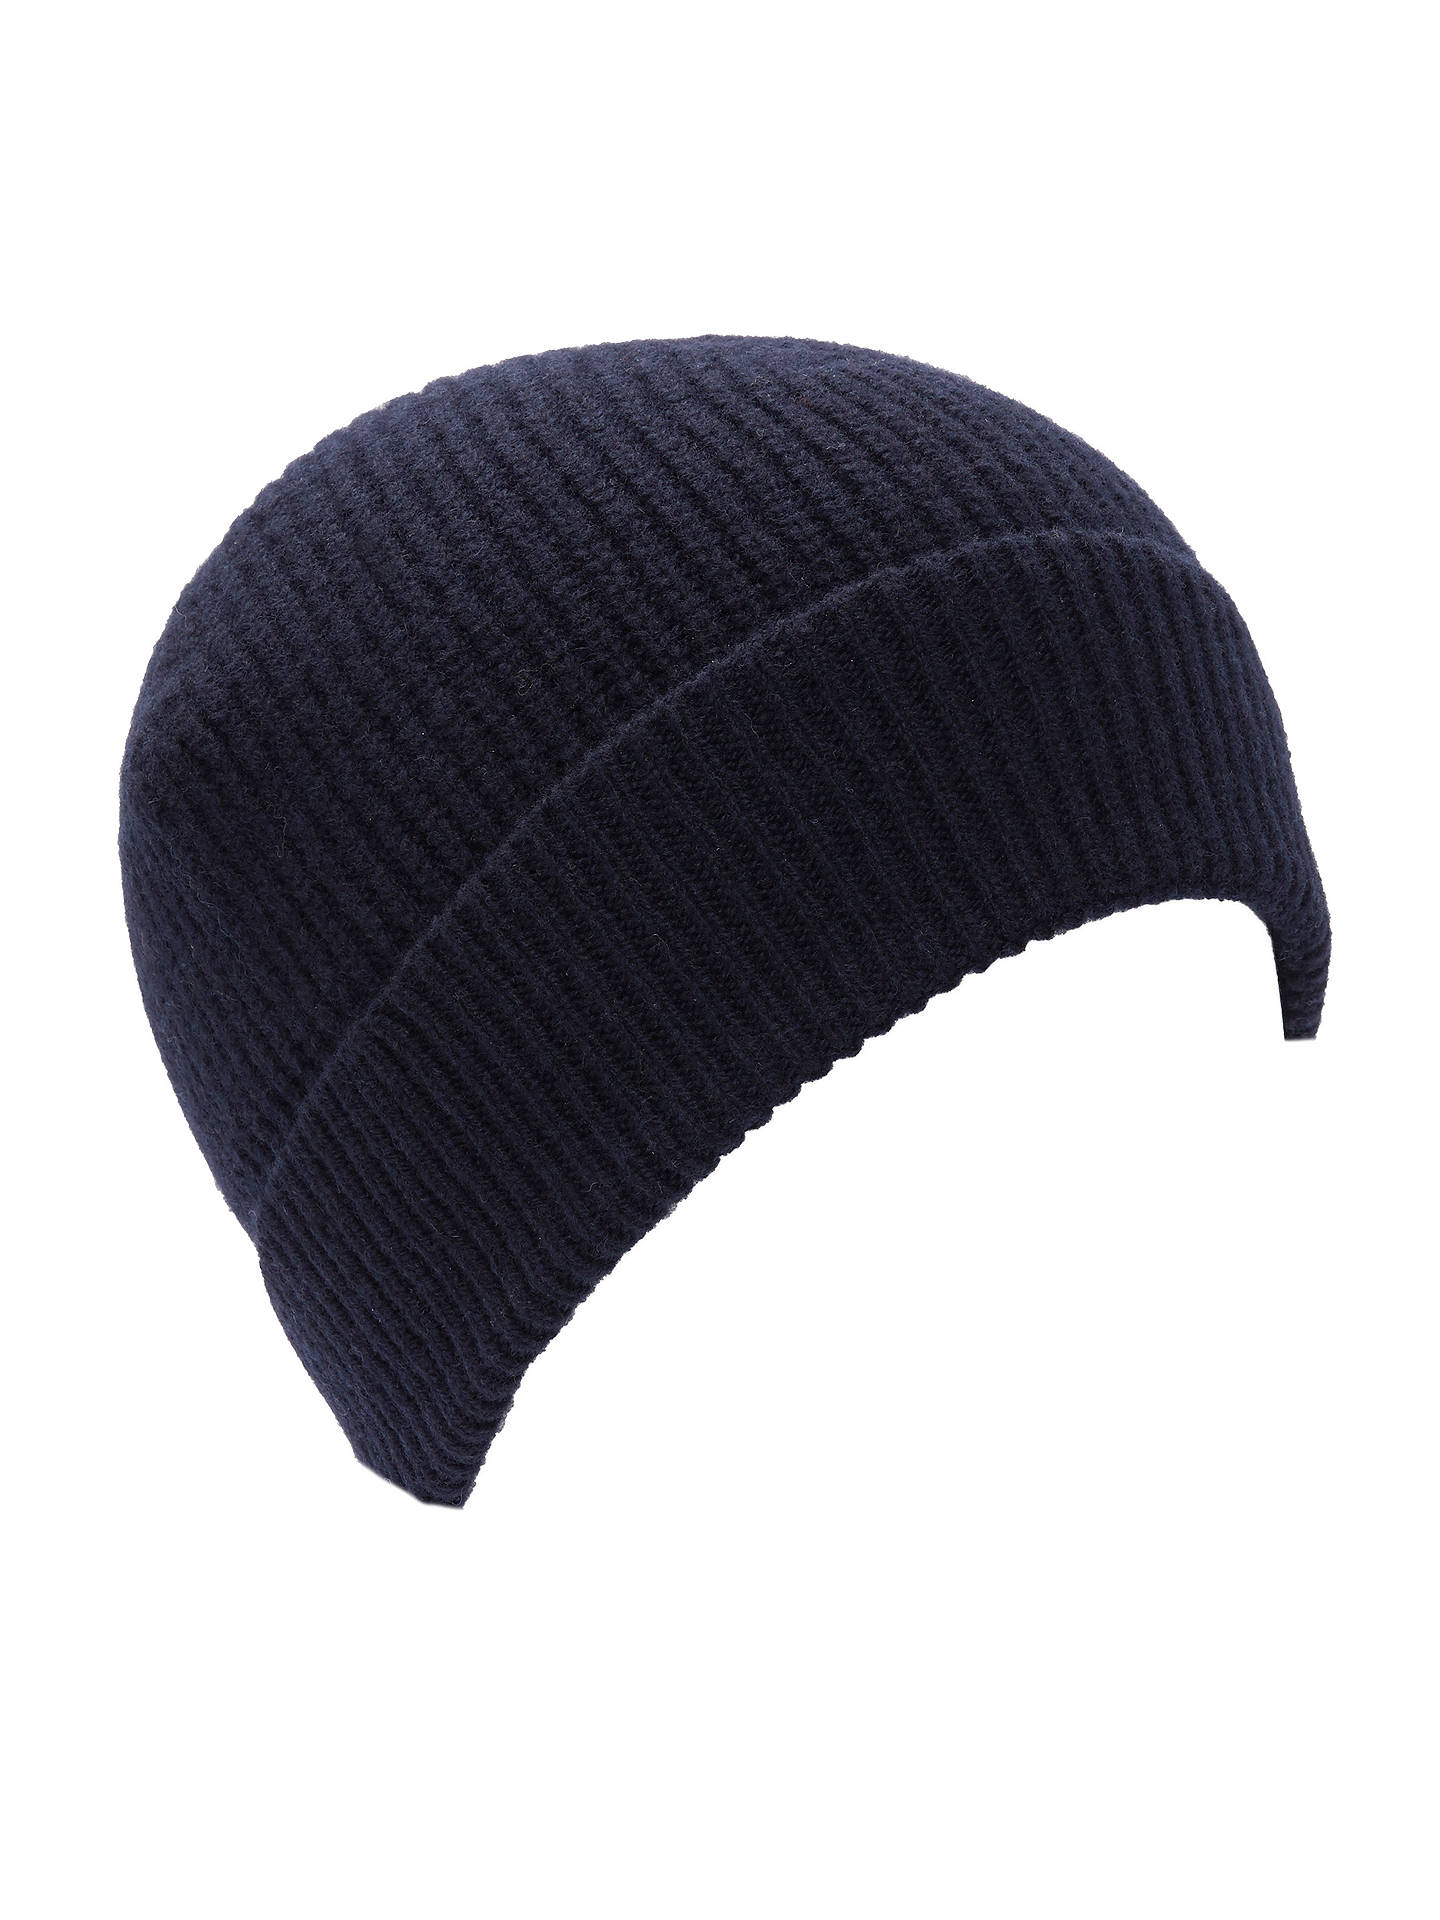 BuyGloverall for John Lewis   Partners Beanie Hat 7a268a0f221